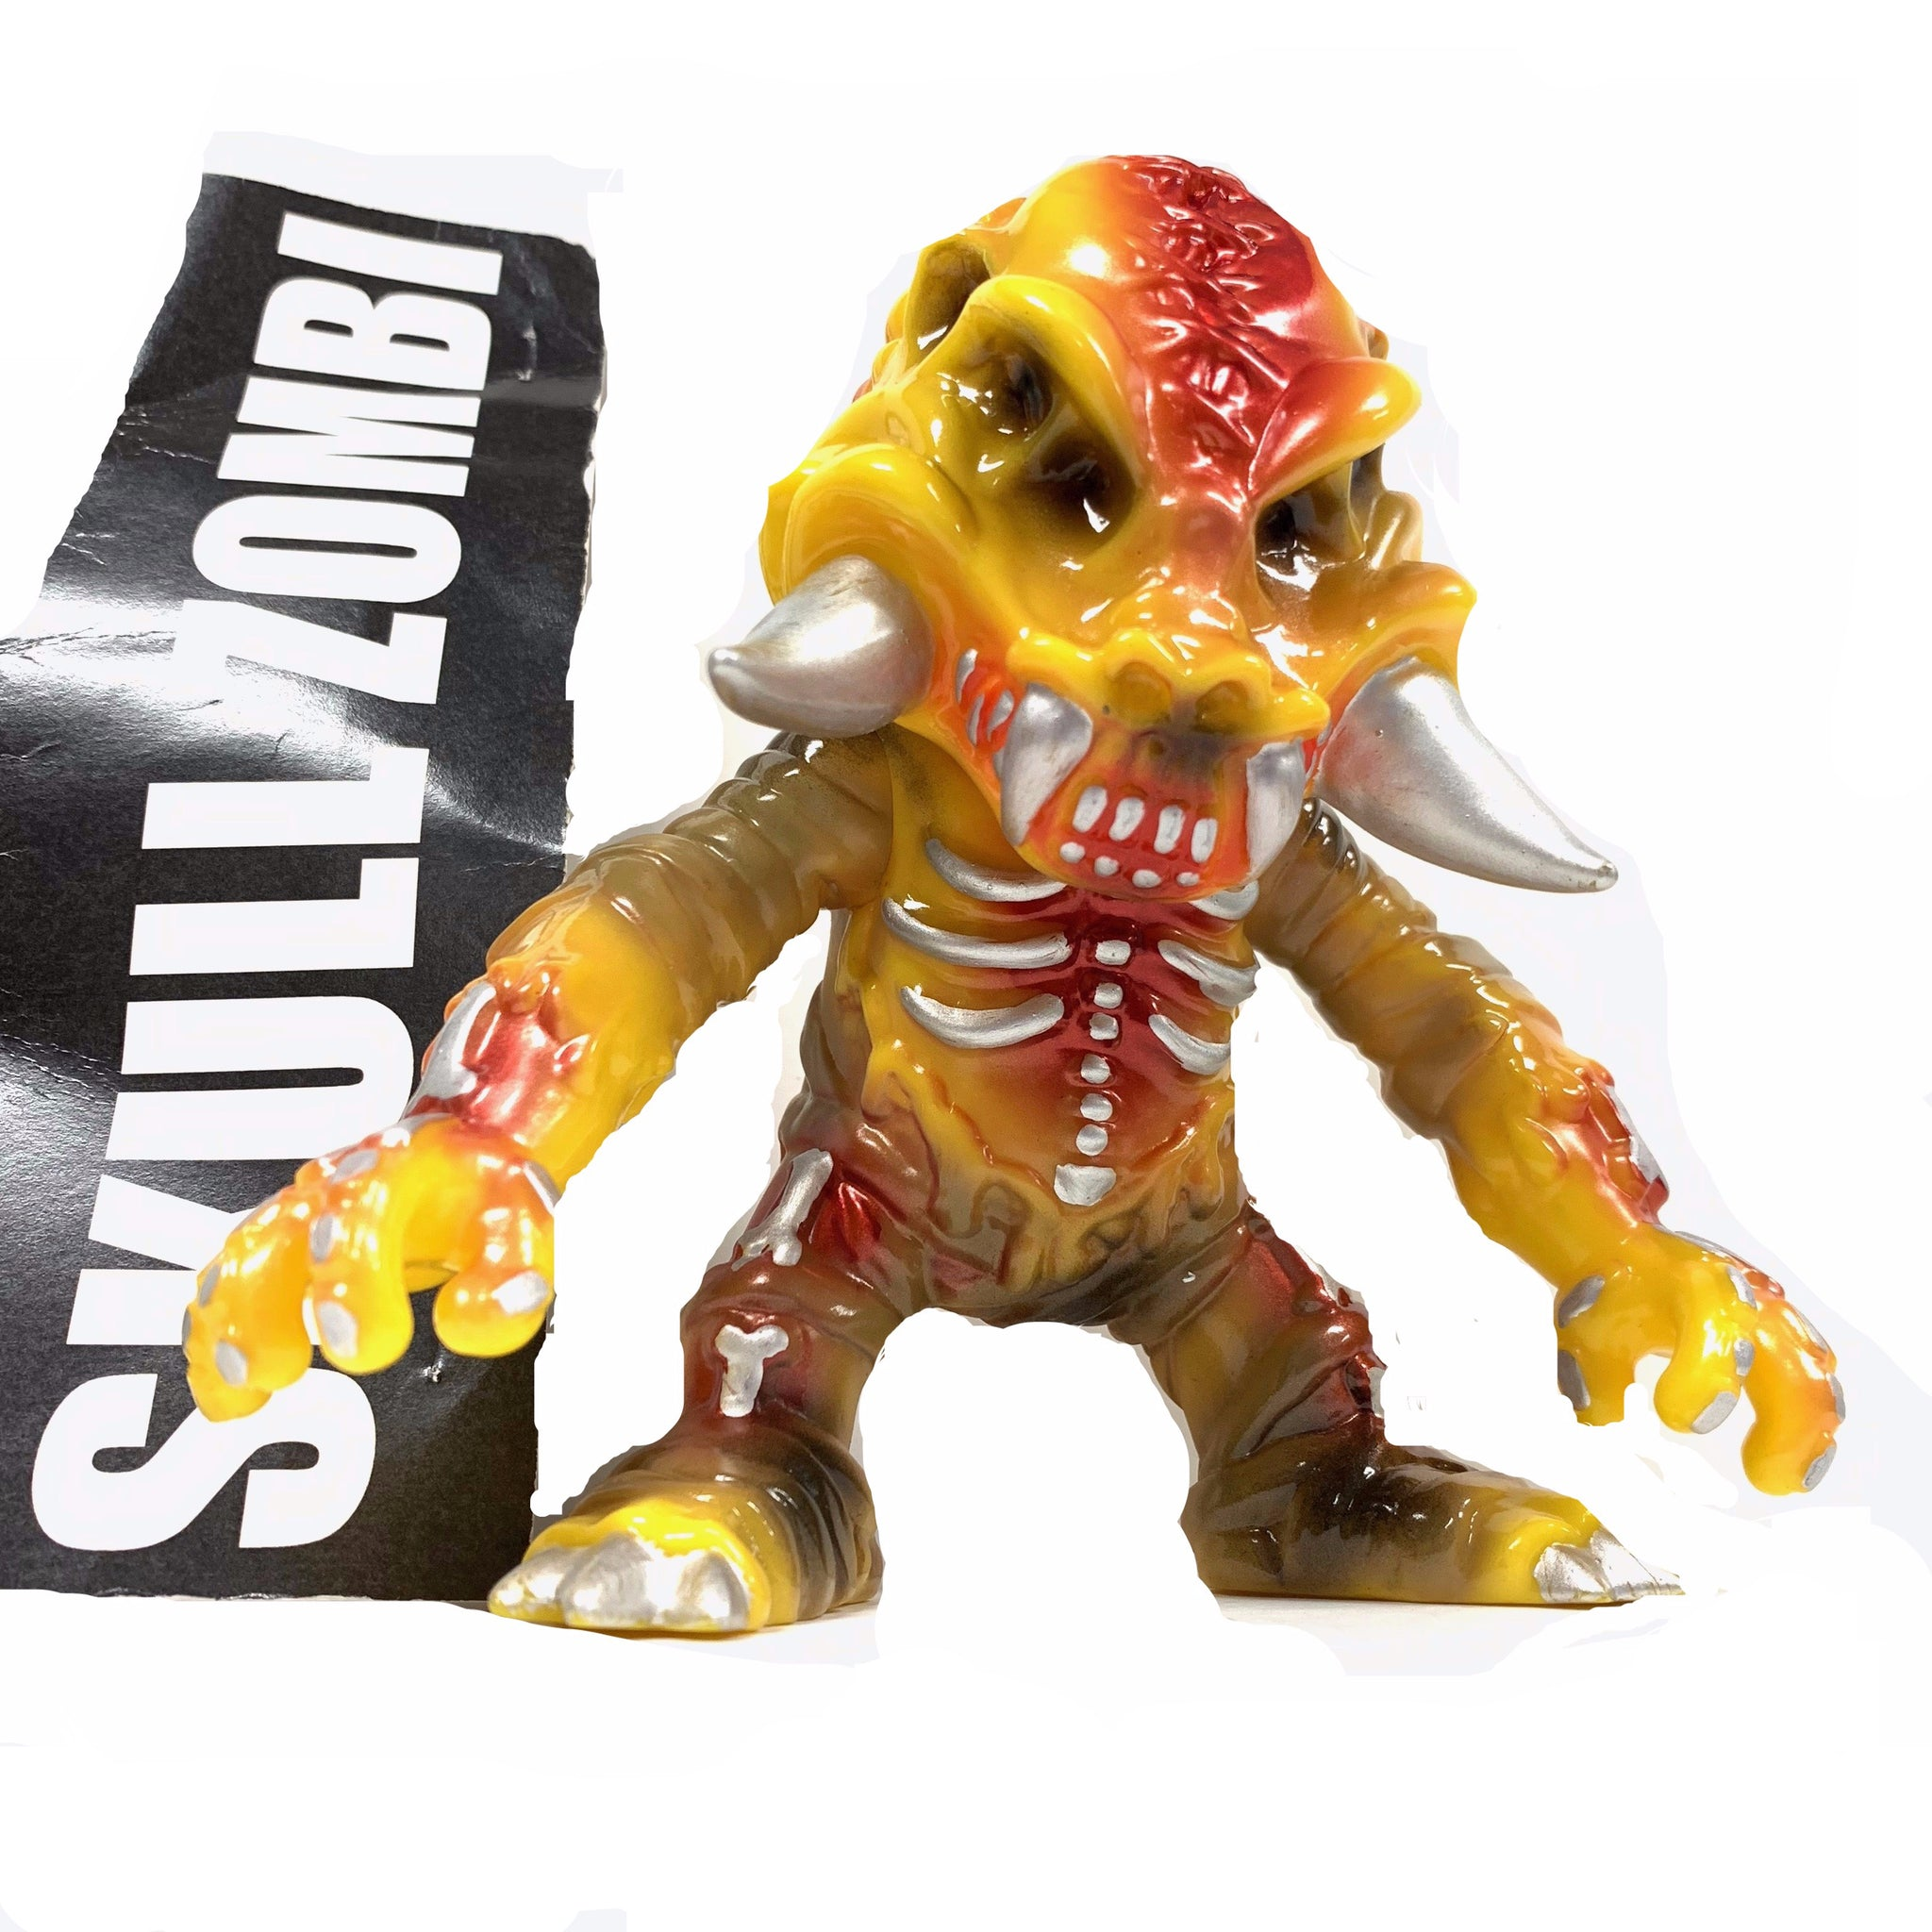 "SKULL ZOMBI by VINYL JUNKIES - OG - Vintage - 5"" Tall. Fight Figure size."